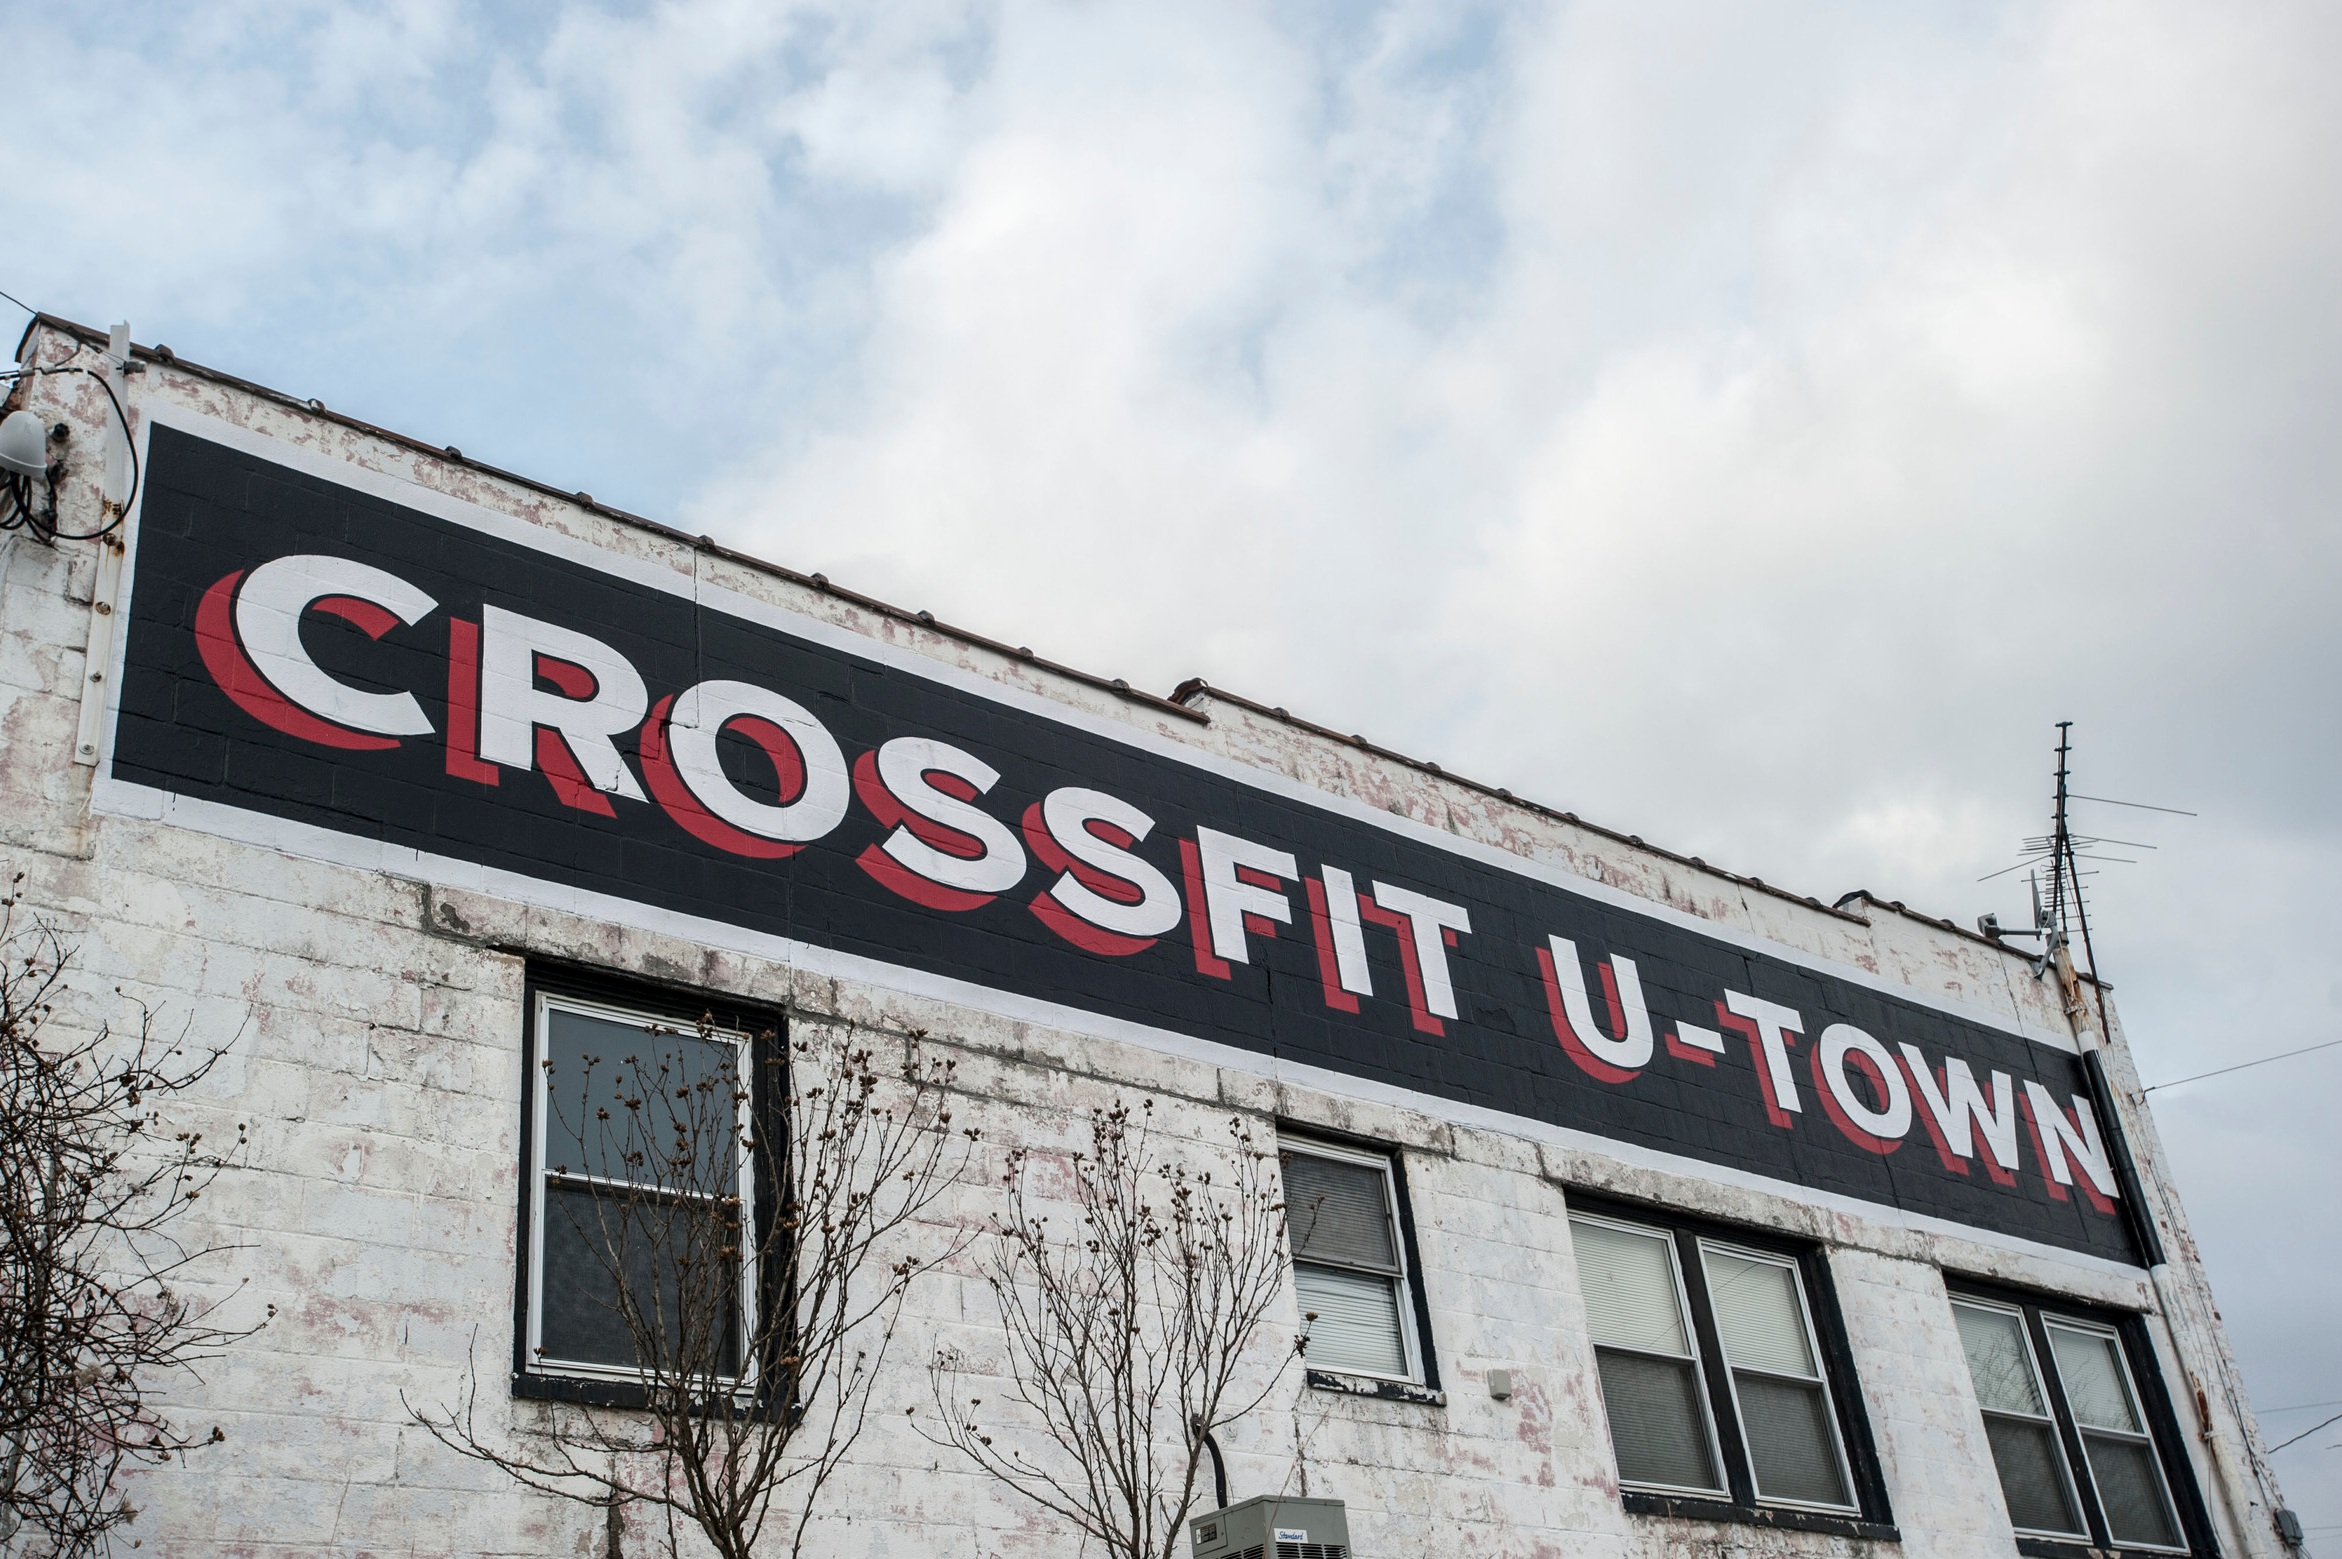 Welcome to CrossFit U-Town - A place to improve your fitness, health and a place of community.